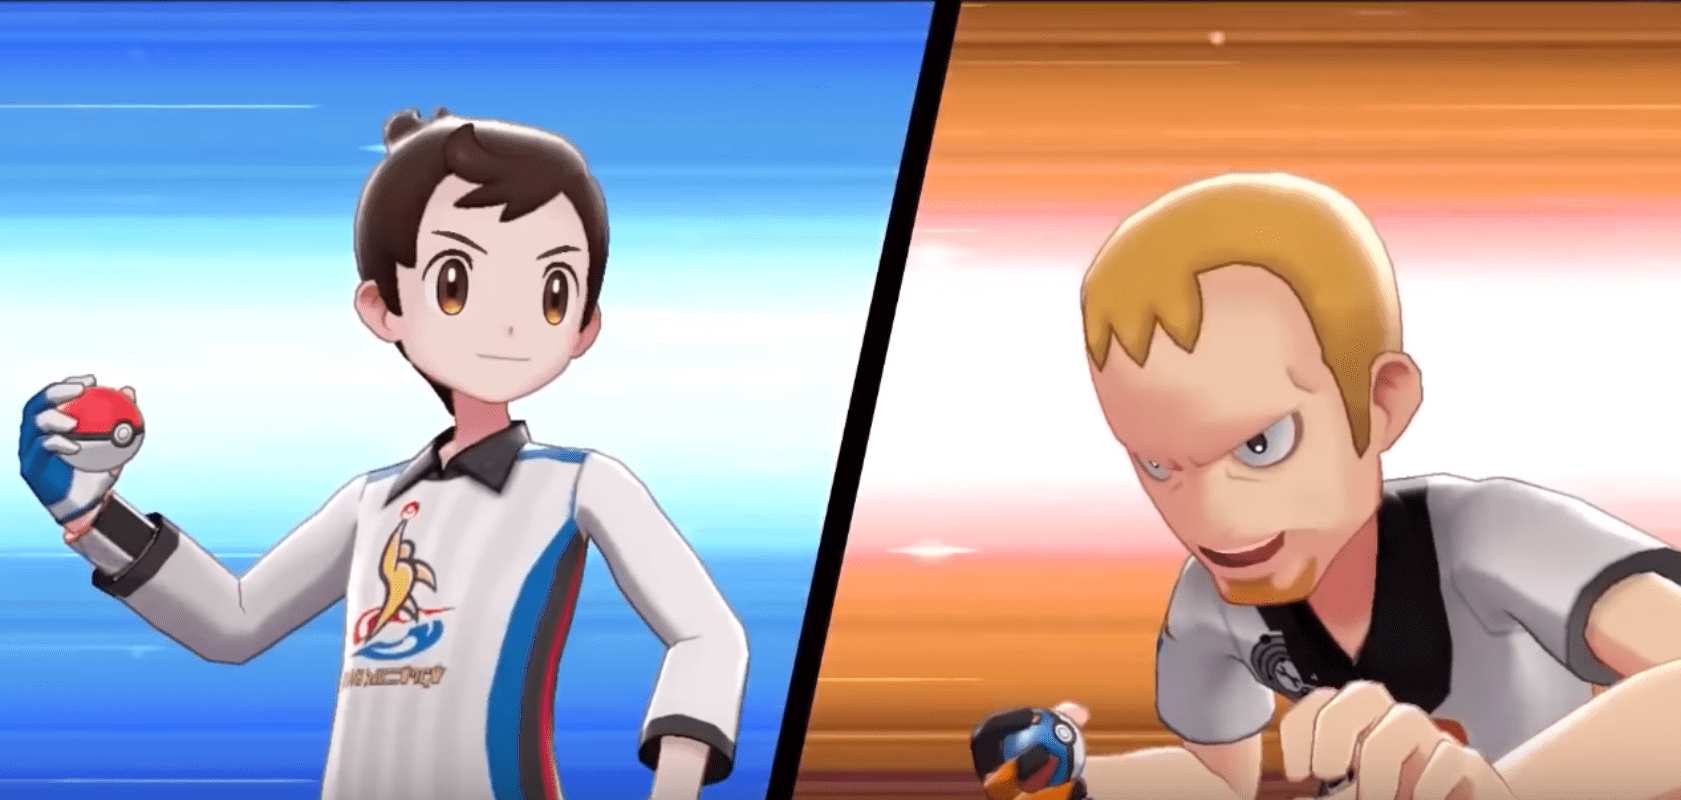 An Official Pokémon Sword And Pokémon Shield Guidebook Is Riddled With Errors, The Pokemon Company Apologizes